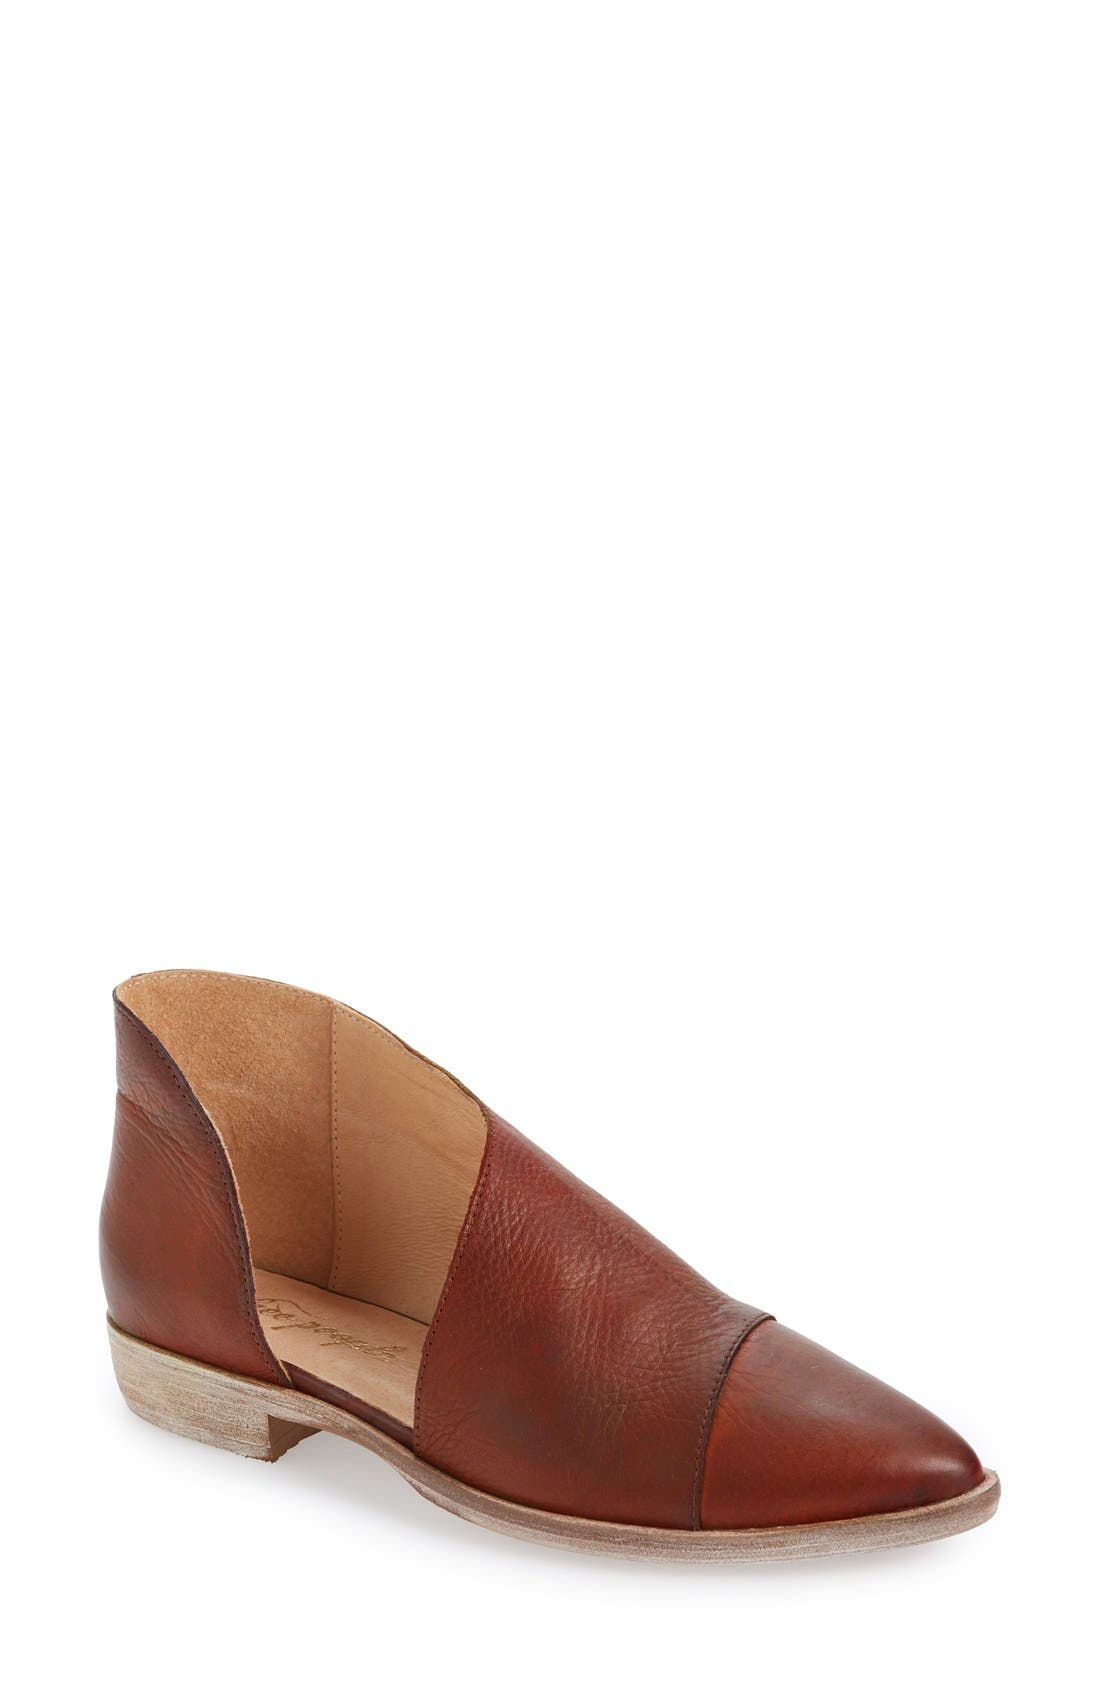 Main Image - Free People 'Royale' Pointy Toe Flat (Women)